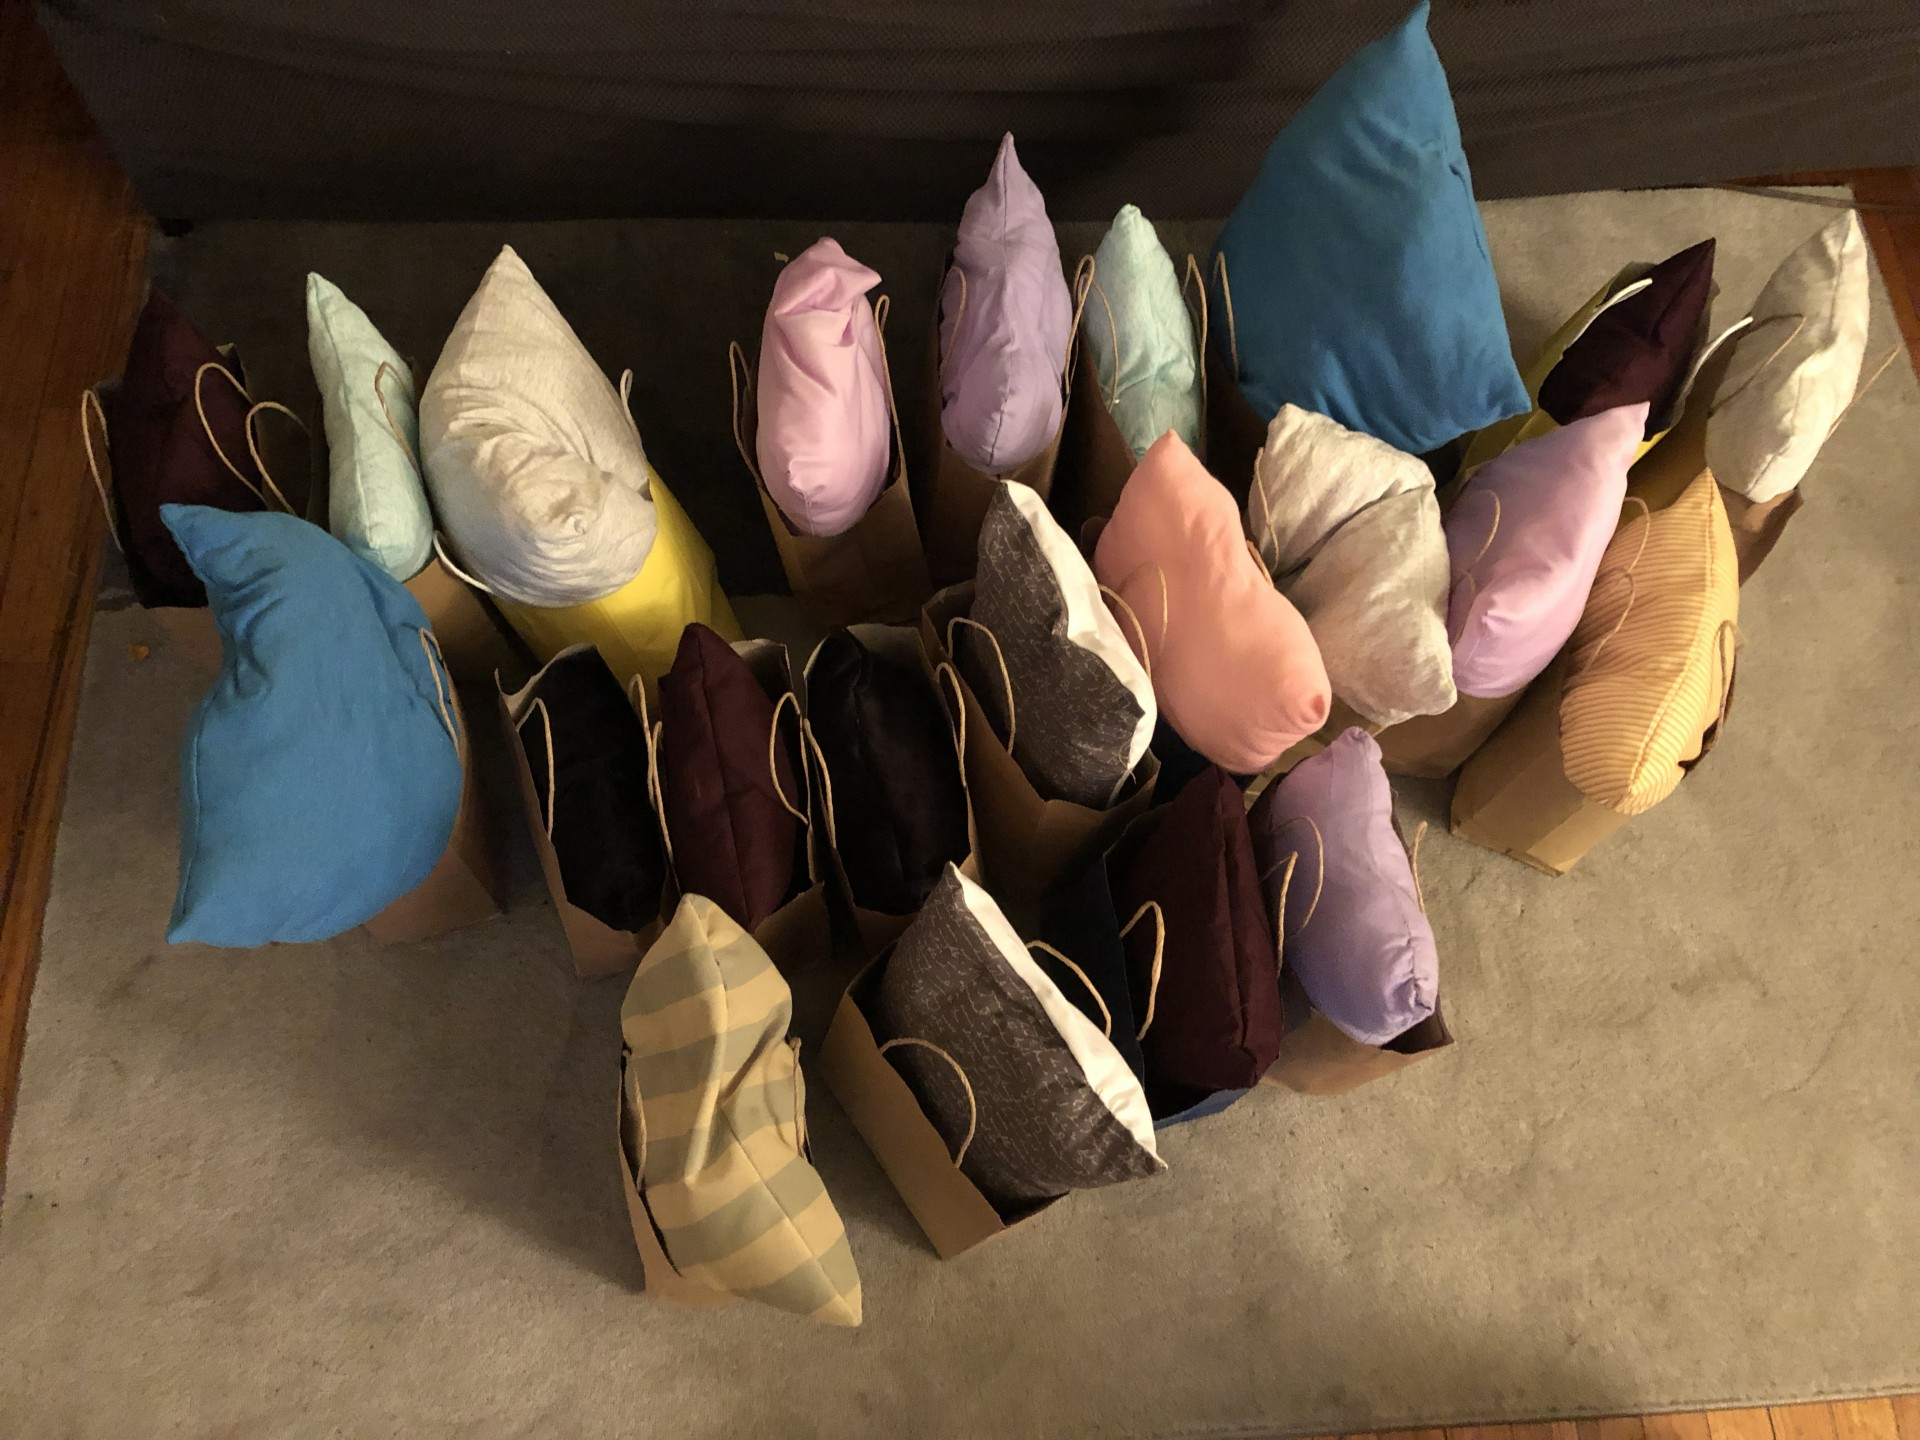 This is a picture of 22 pillows and care packages I made for a local women's shelter.